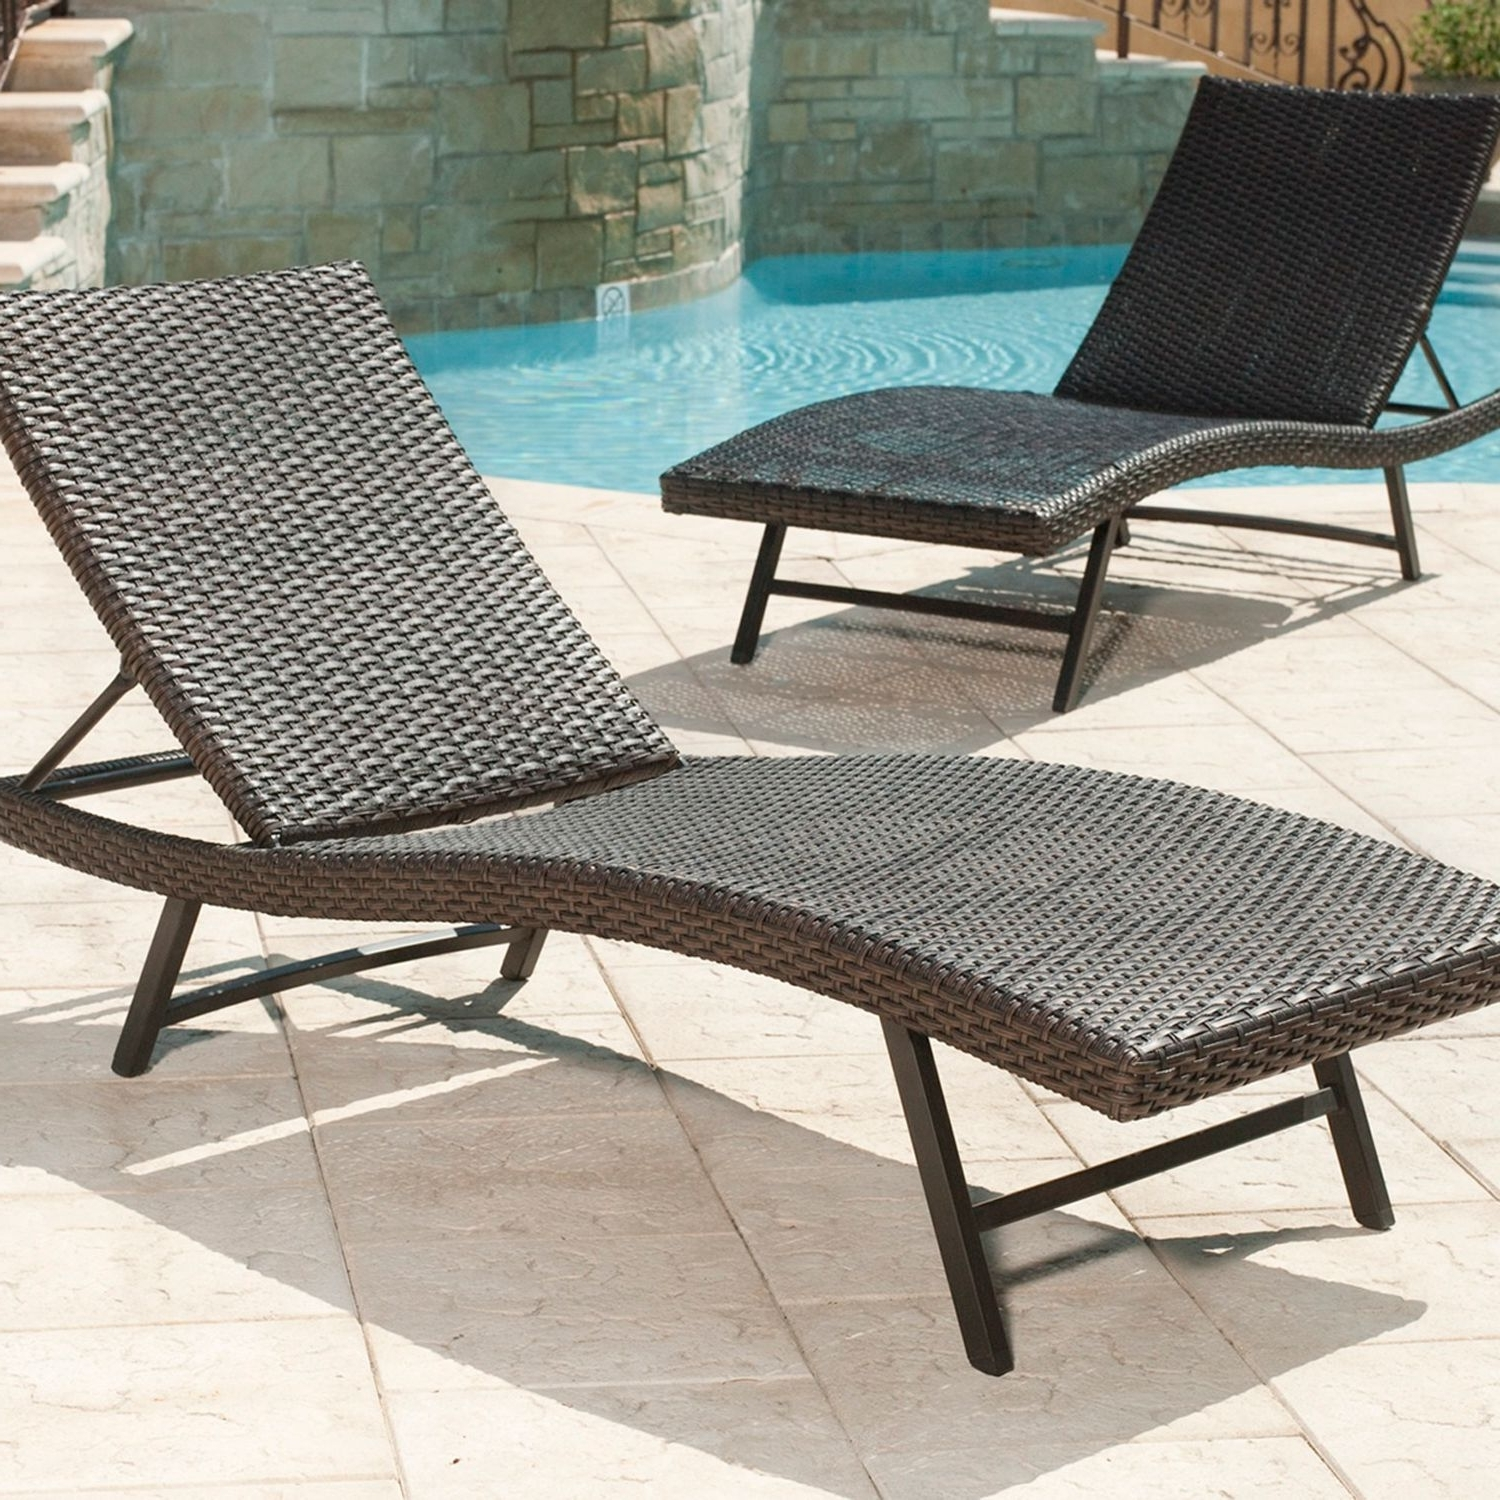 Martha Stewart Outdoor Chaise Lounge Chairs Pertaining To Fashionable Member's Mark® Heritage Chaise Lounge Chair – Sam's Club (View 14 of 15)